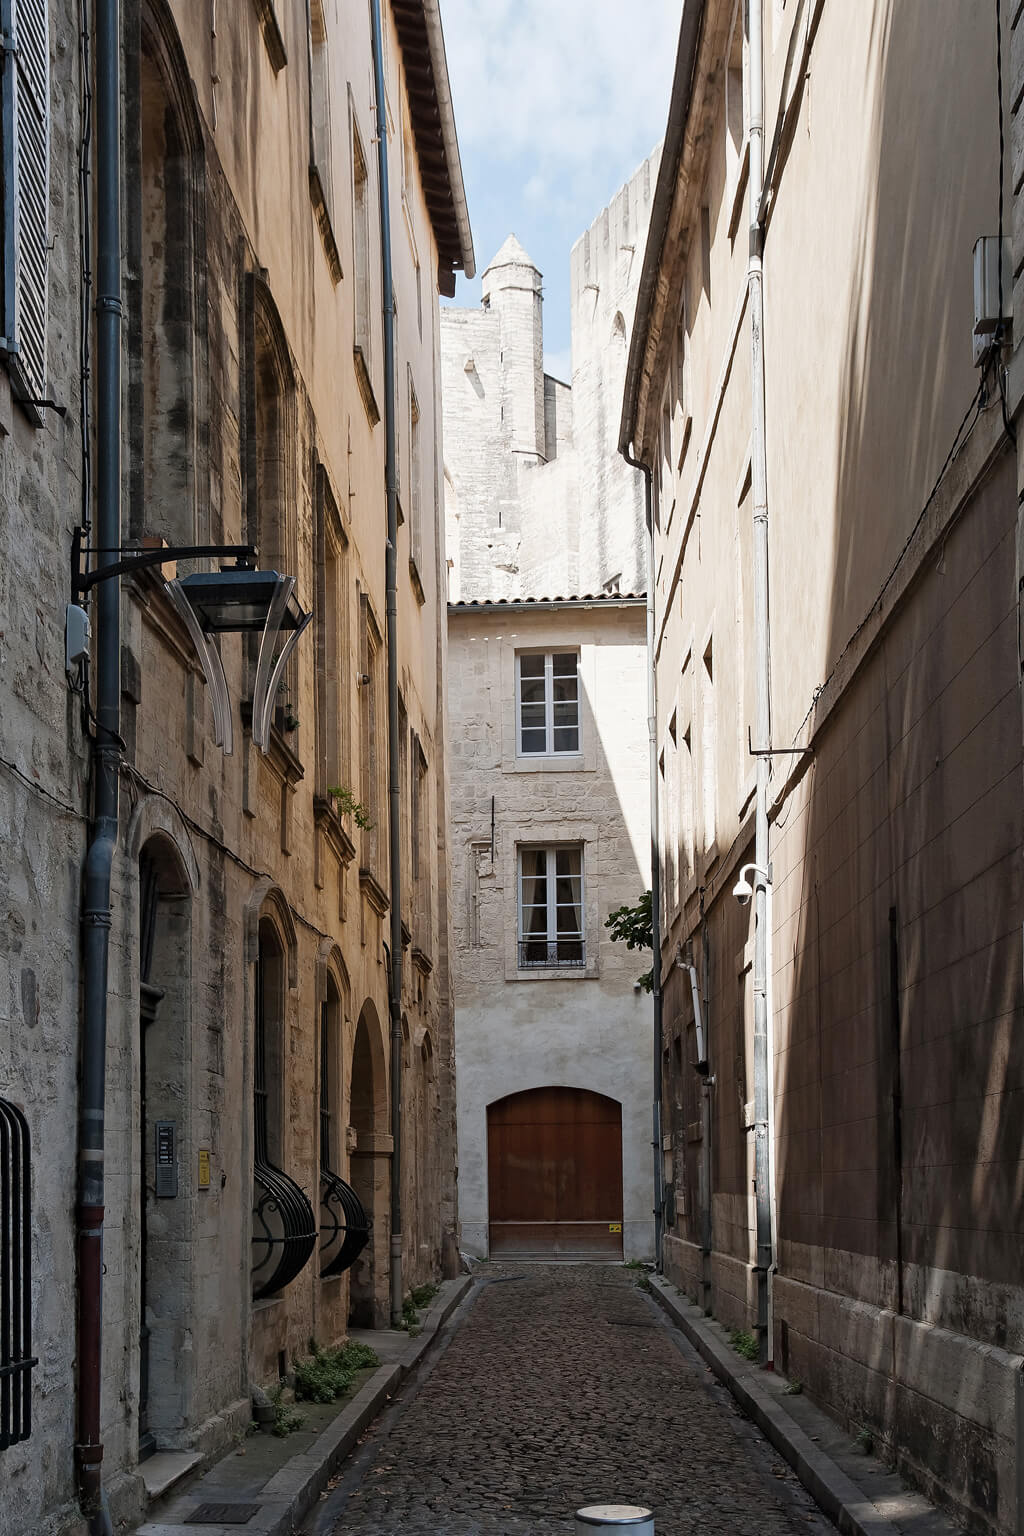 Magnificent alleyway - Avignon, France. Photo: Haven In.